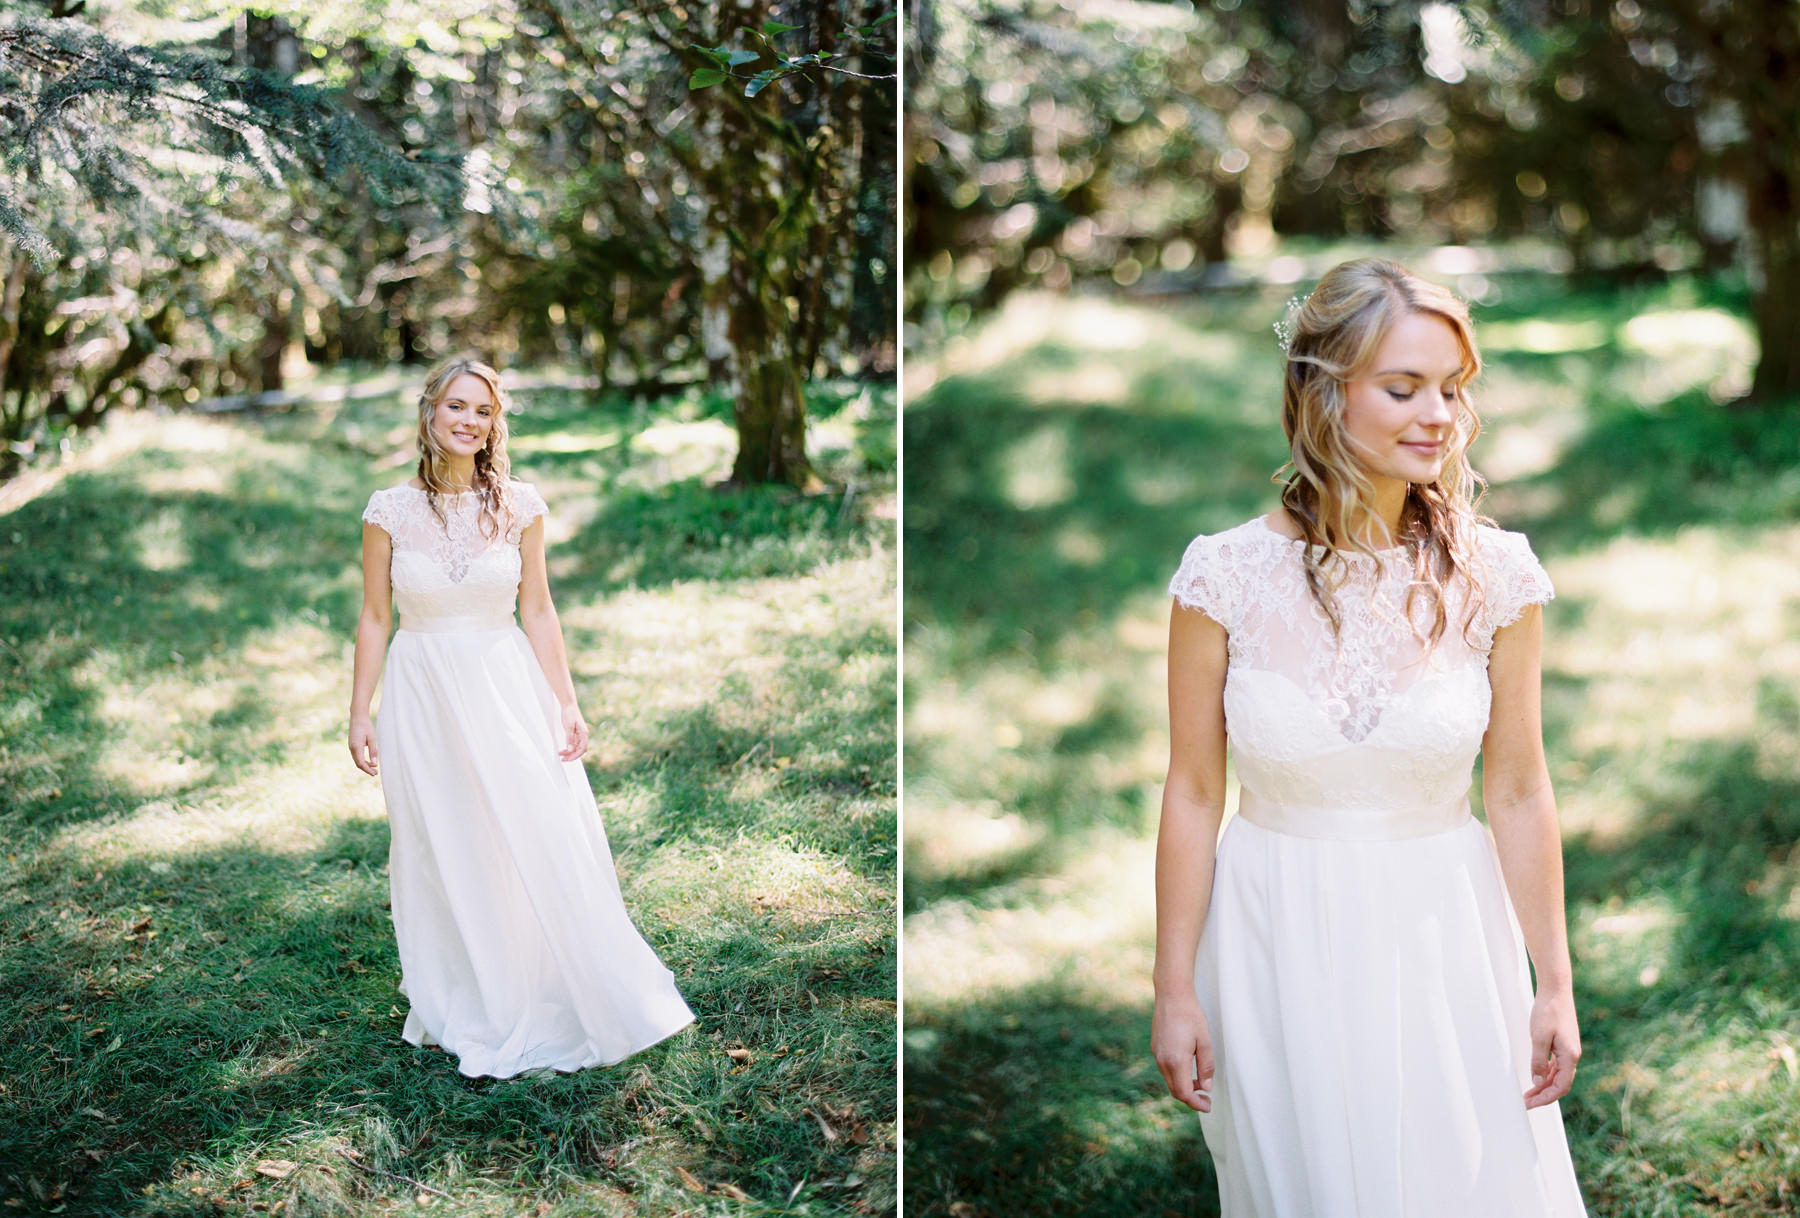 169-fine-art-film-wedding-portraits-at-nature-bride-near-the-lake-crescent-lodge.jpg